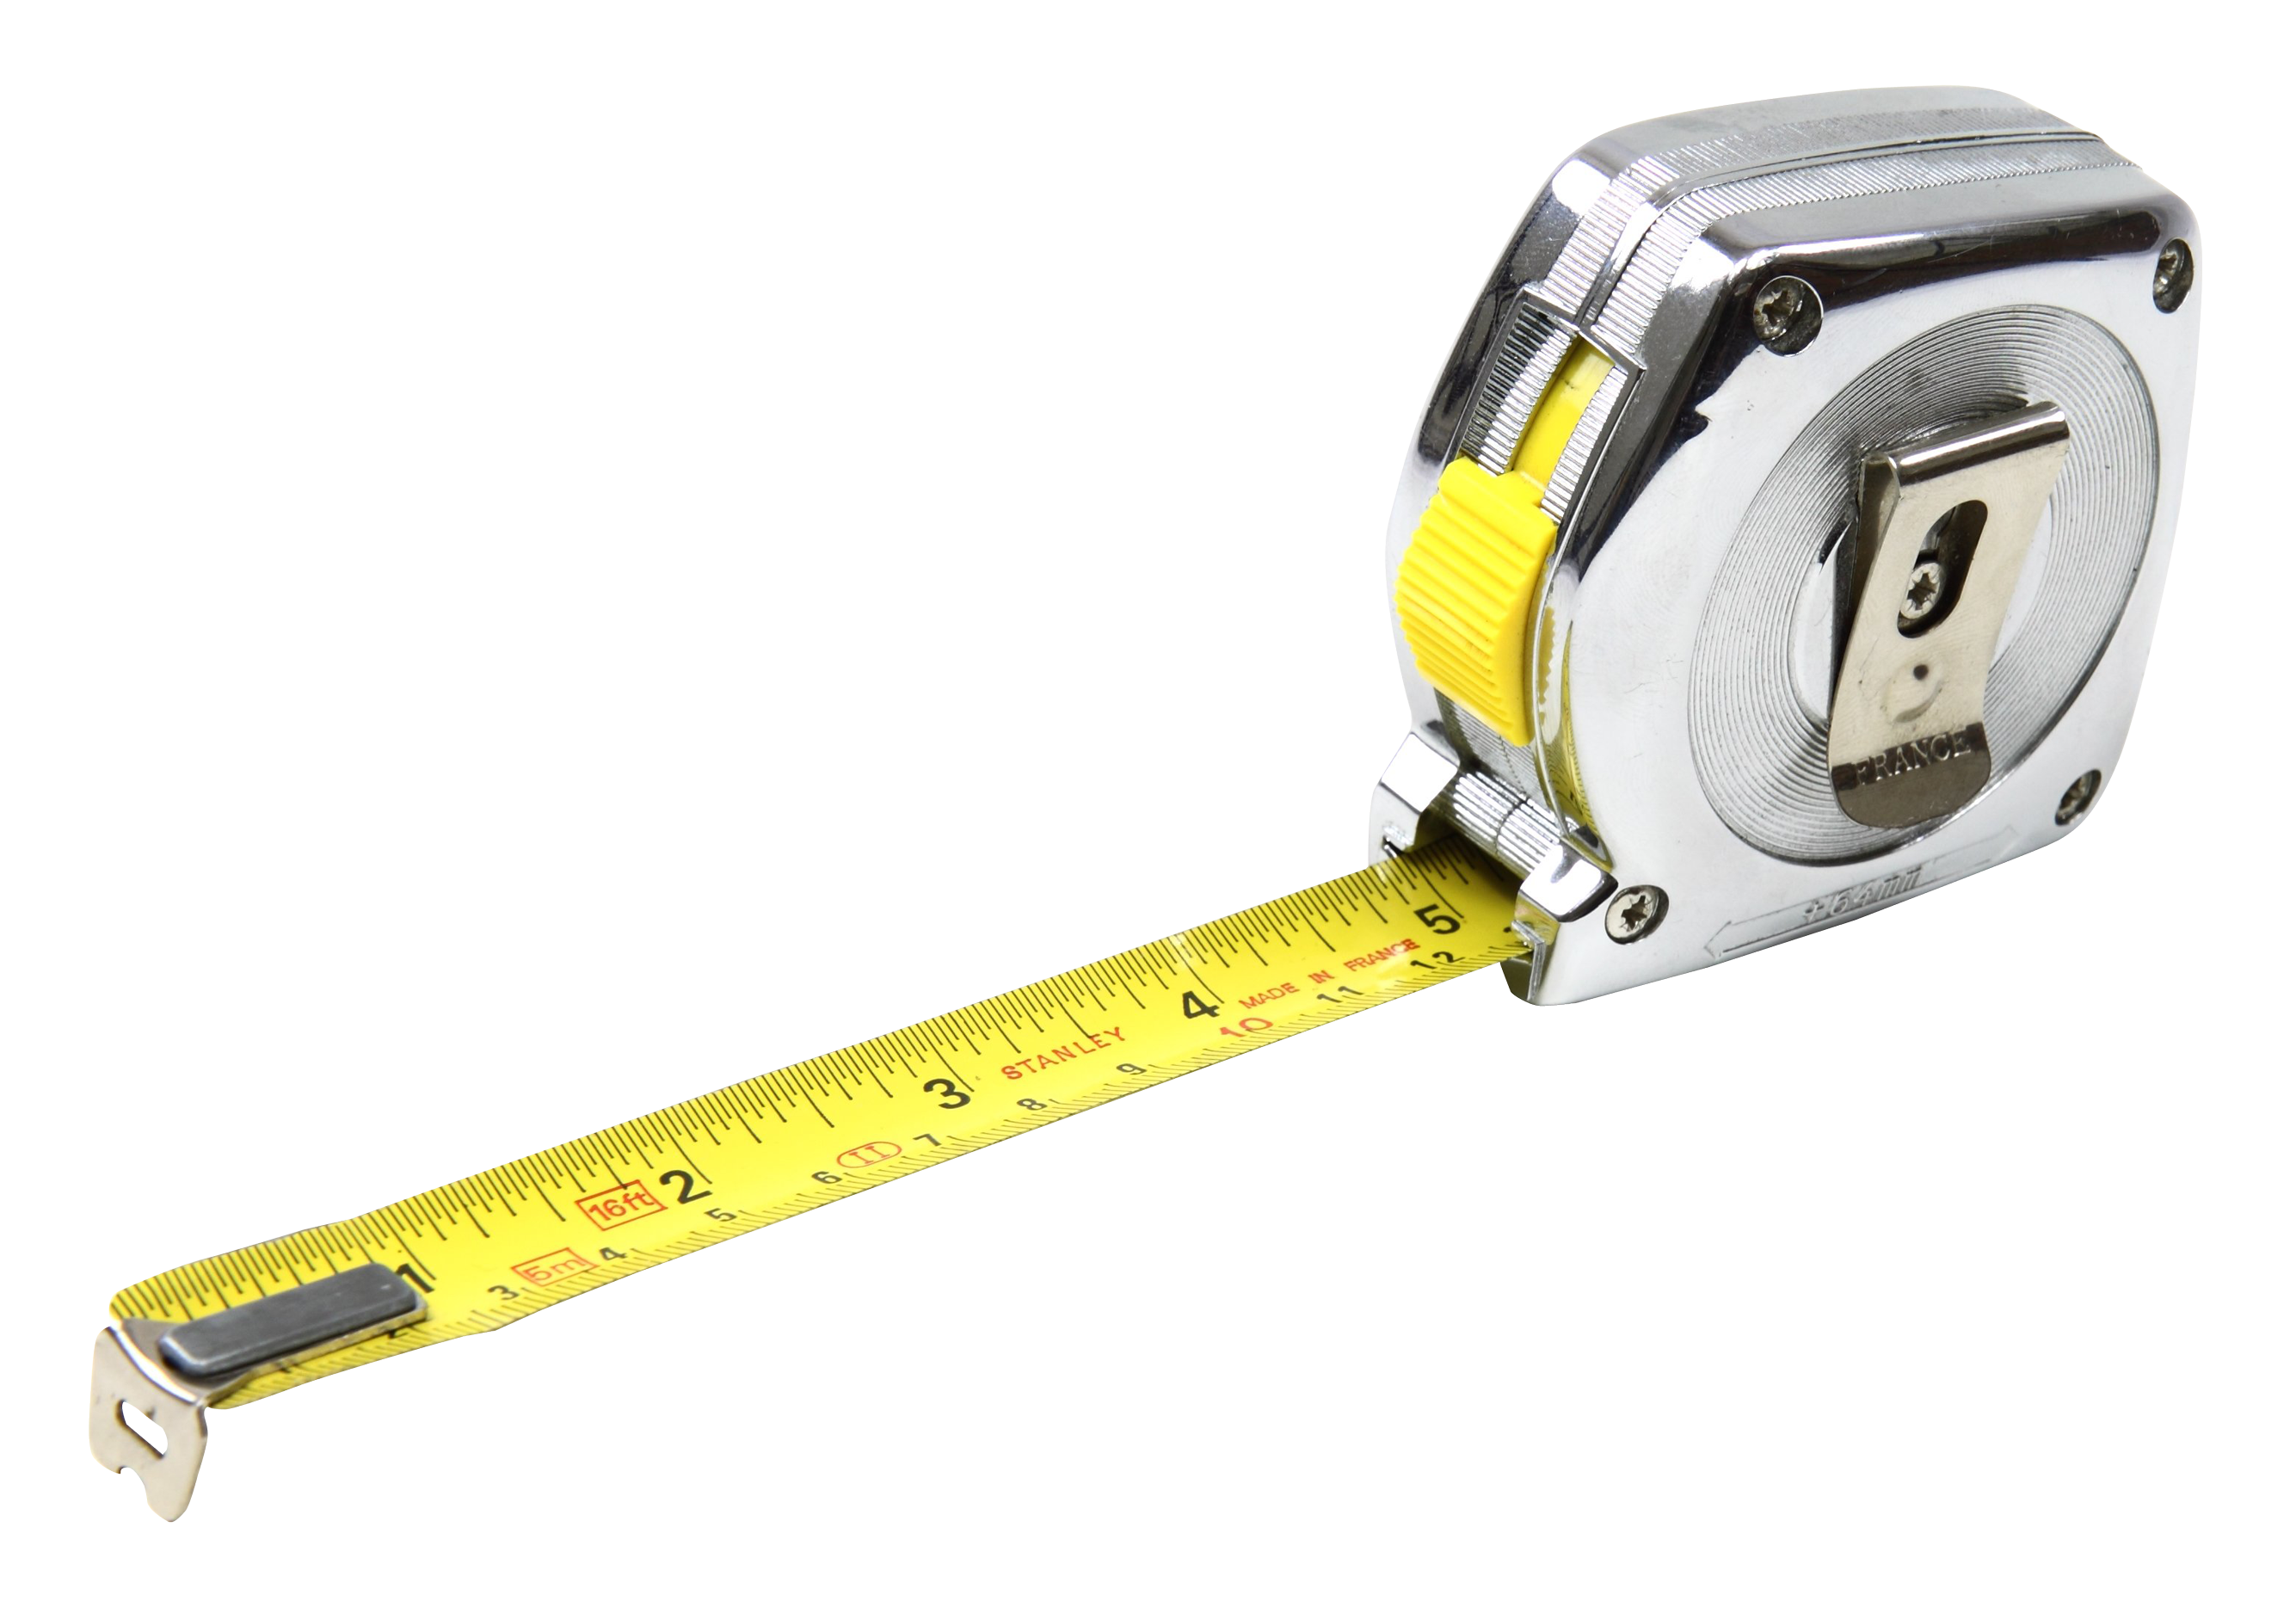 Tape measure transparent background clipart vector royalty free Measure tape PNG images free download vector royalty free